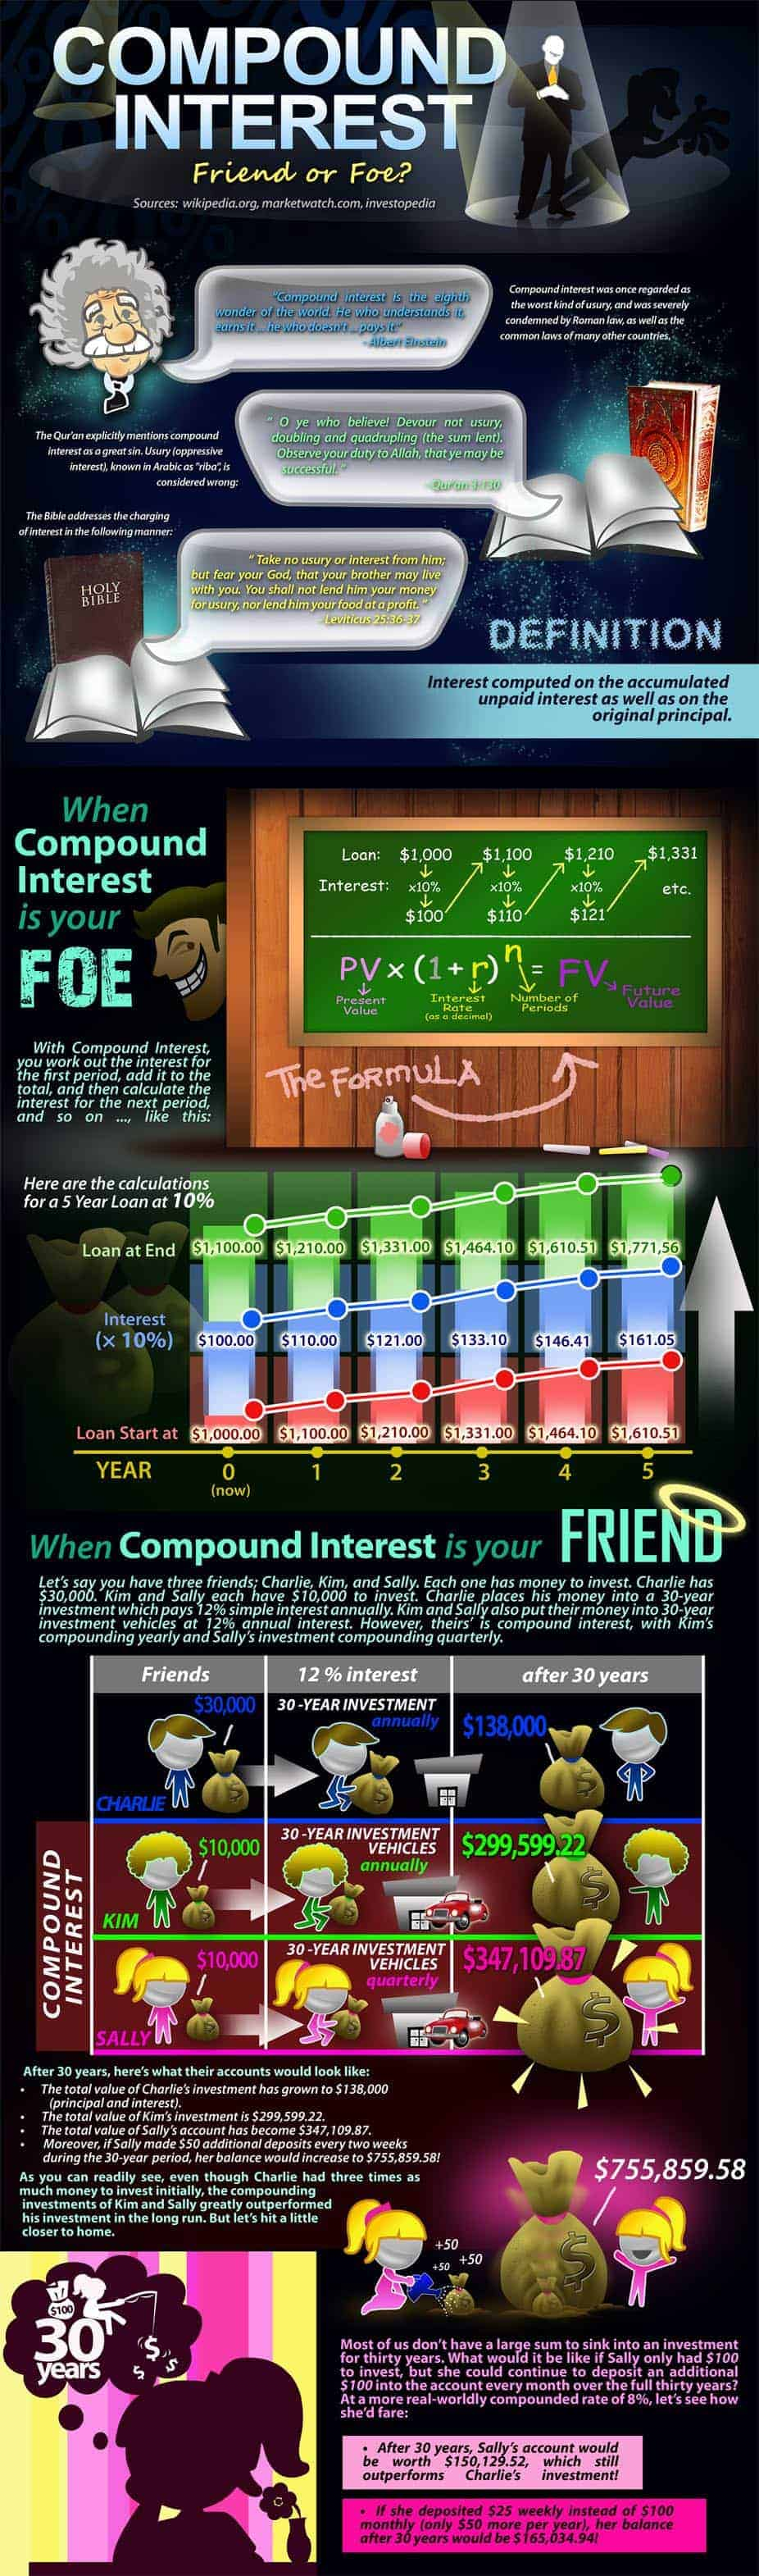 Compound Interest Infographic